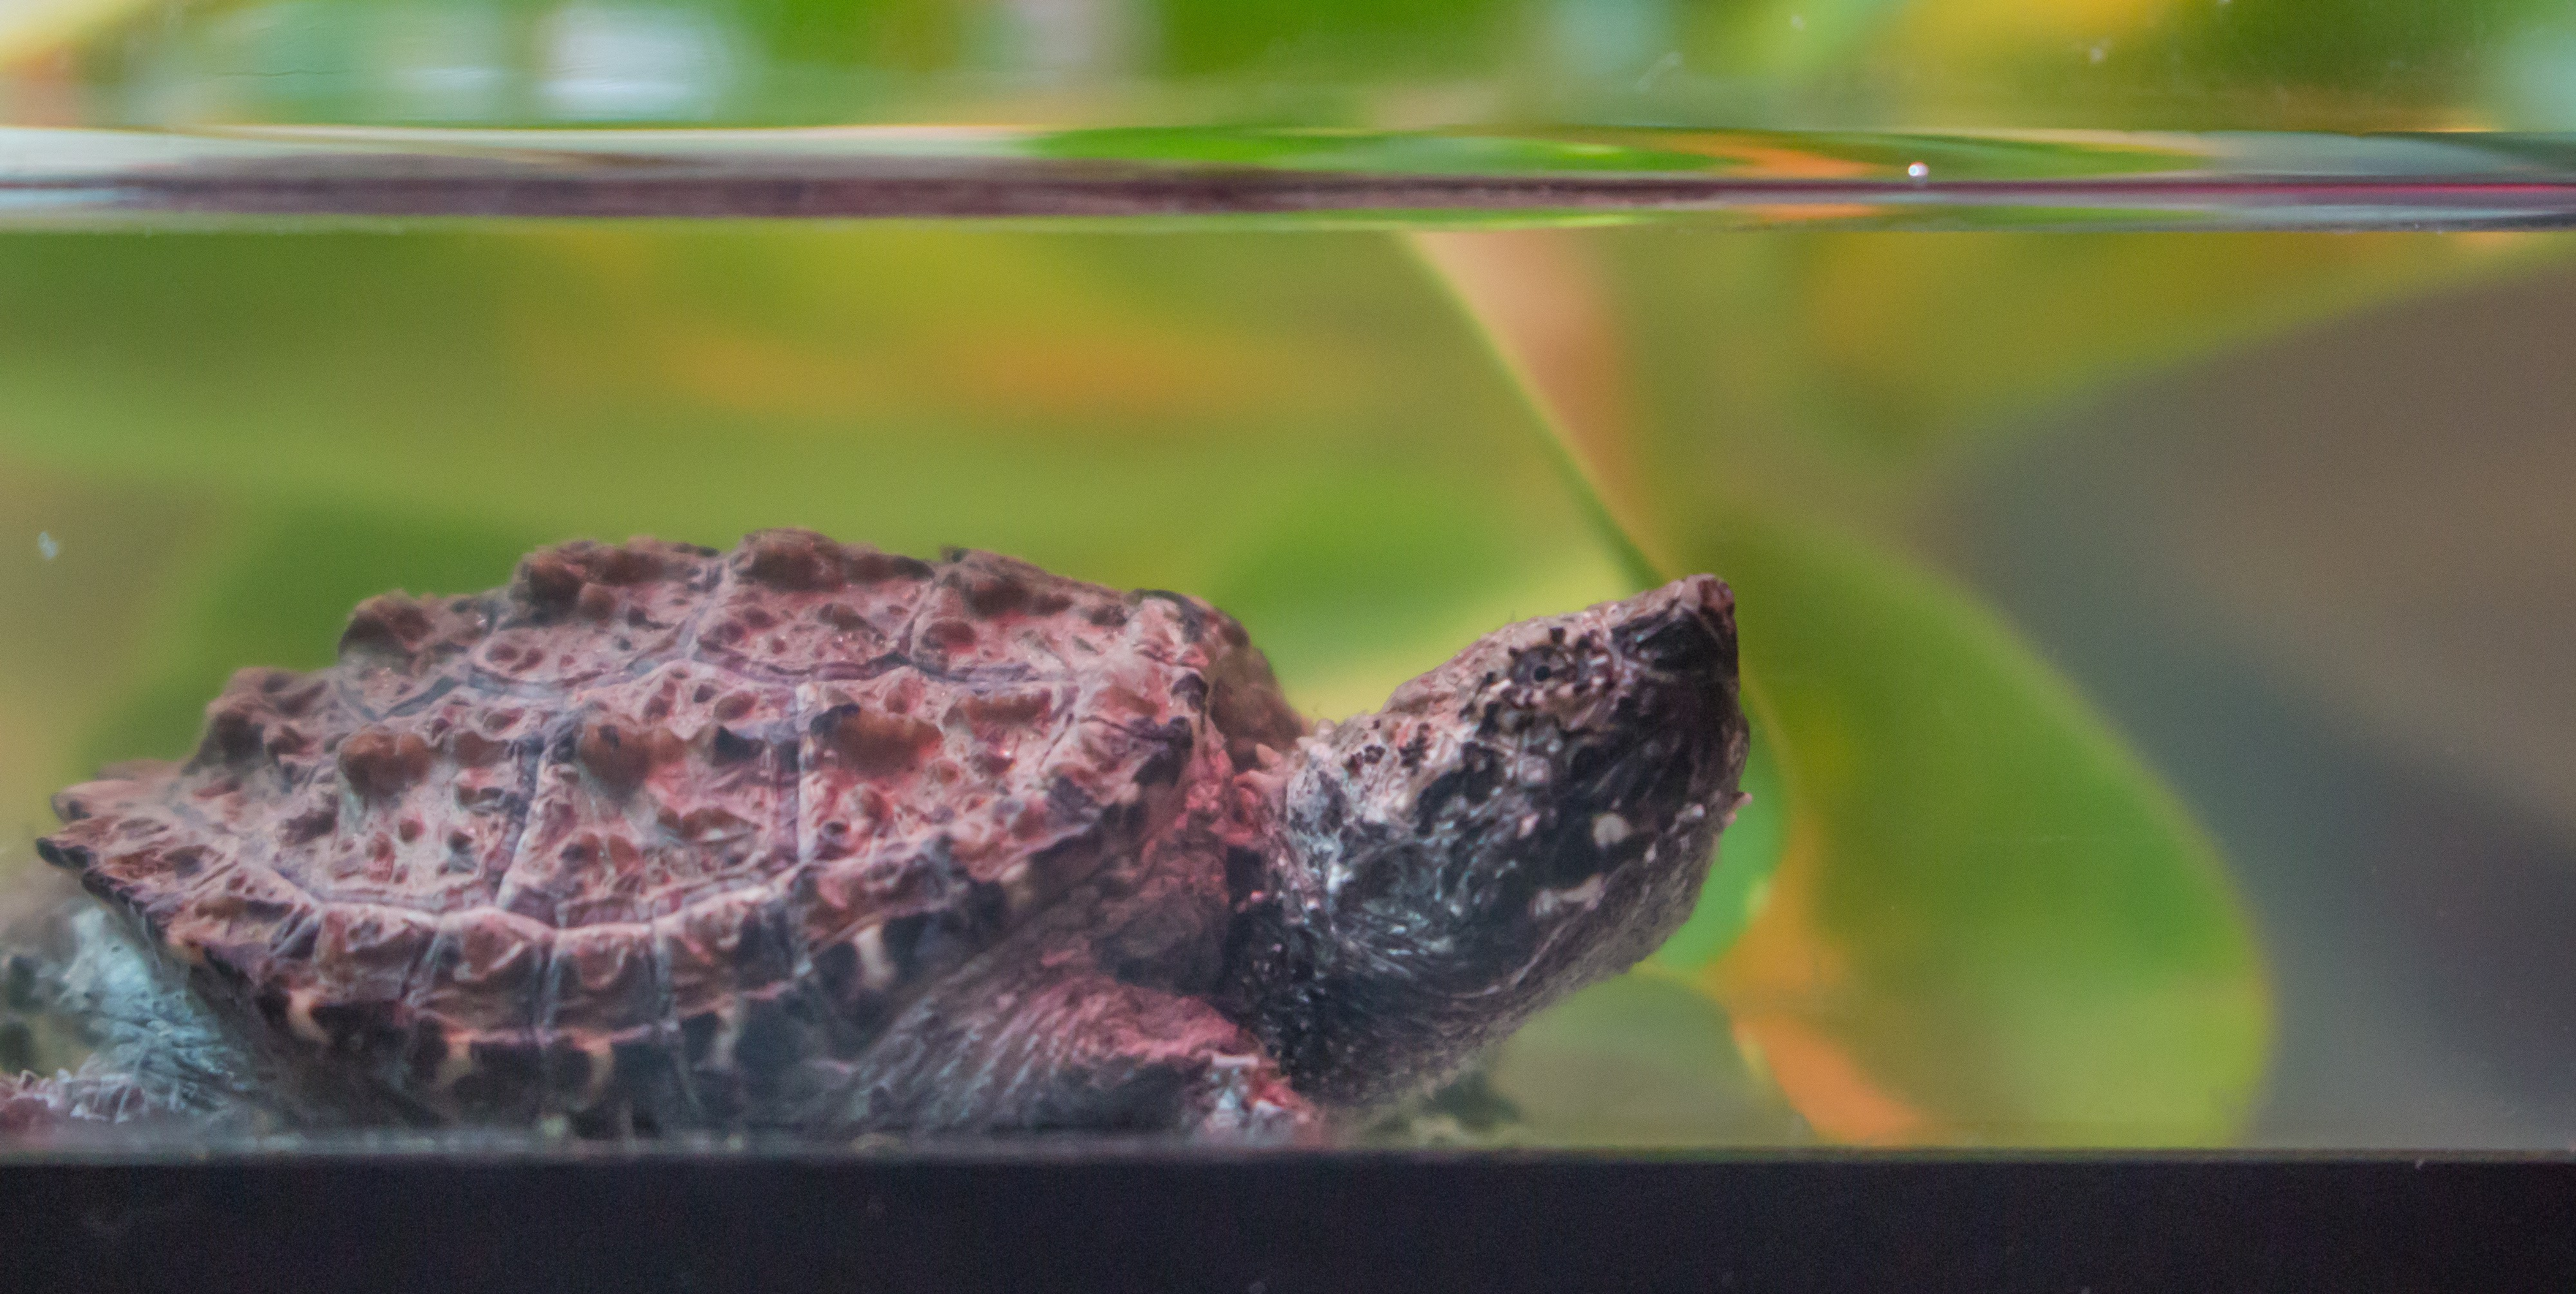 Baby Snapping Turtles Found In Swimming Pool By Conservancy Of Swfl A Week Inside The Von Arx Wildlife Hospital Medium